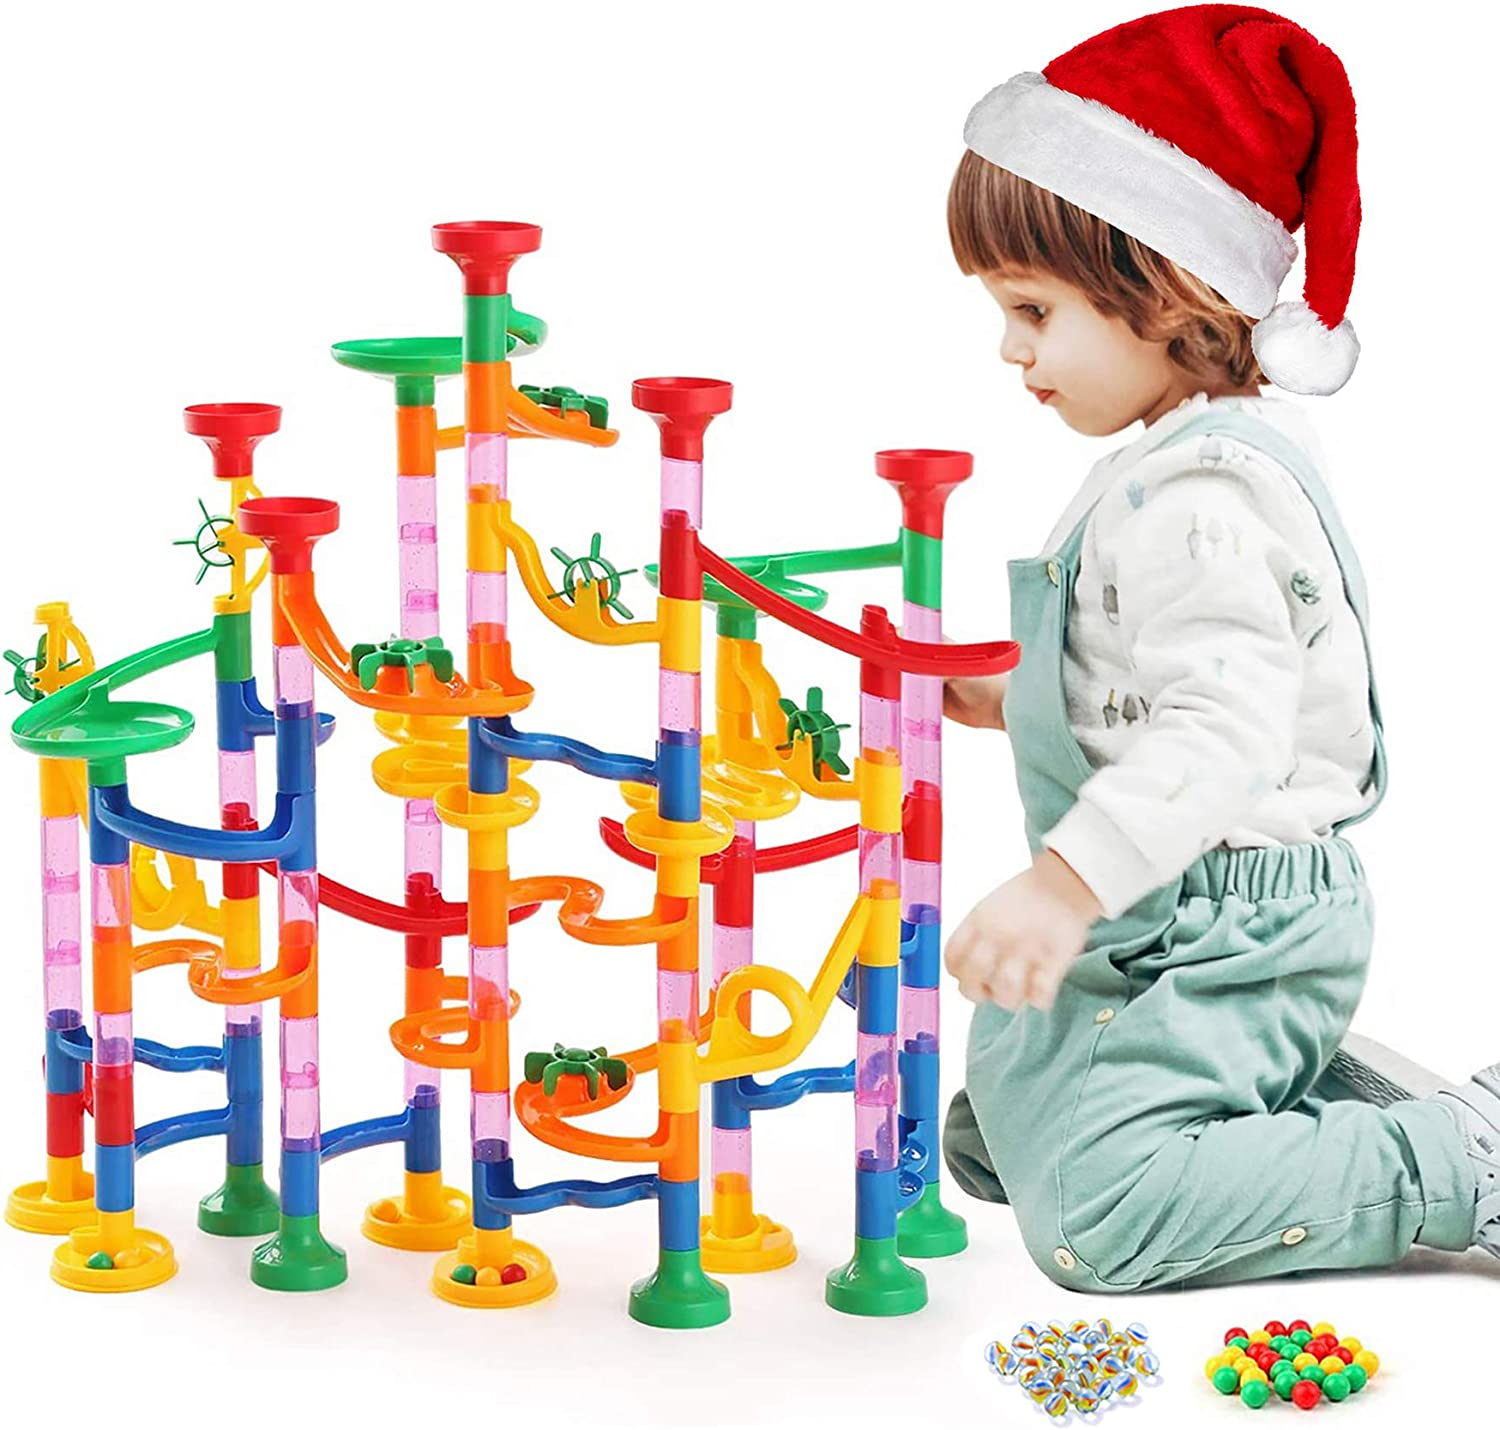 Kuopry Marble Run for Kids - 163 Pieces Building Blocks for Toddlers, Race Track for Boys Girls, Marbles Game, Marble Maze, for Kids,Educational STEM Toys(30Pcs Glass Marbles for Free)